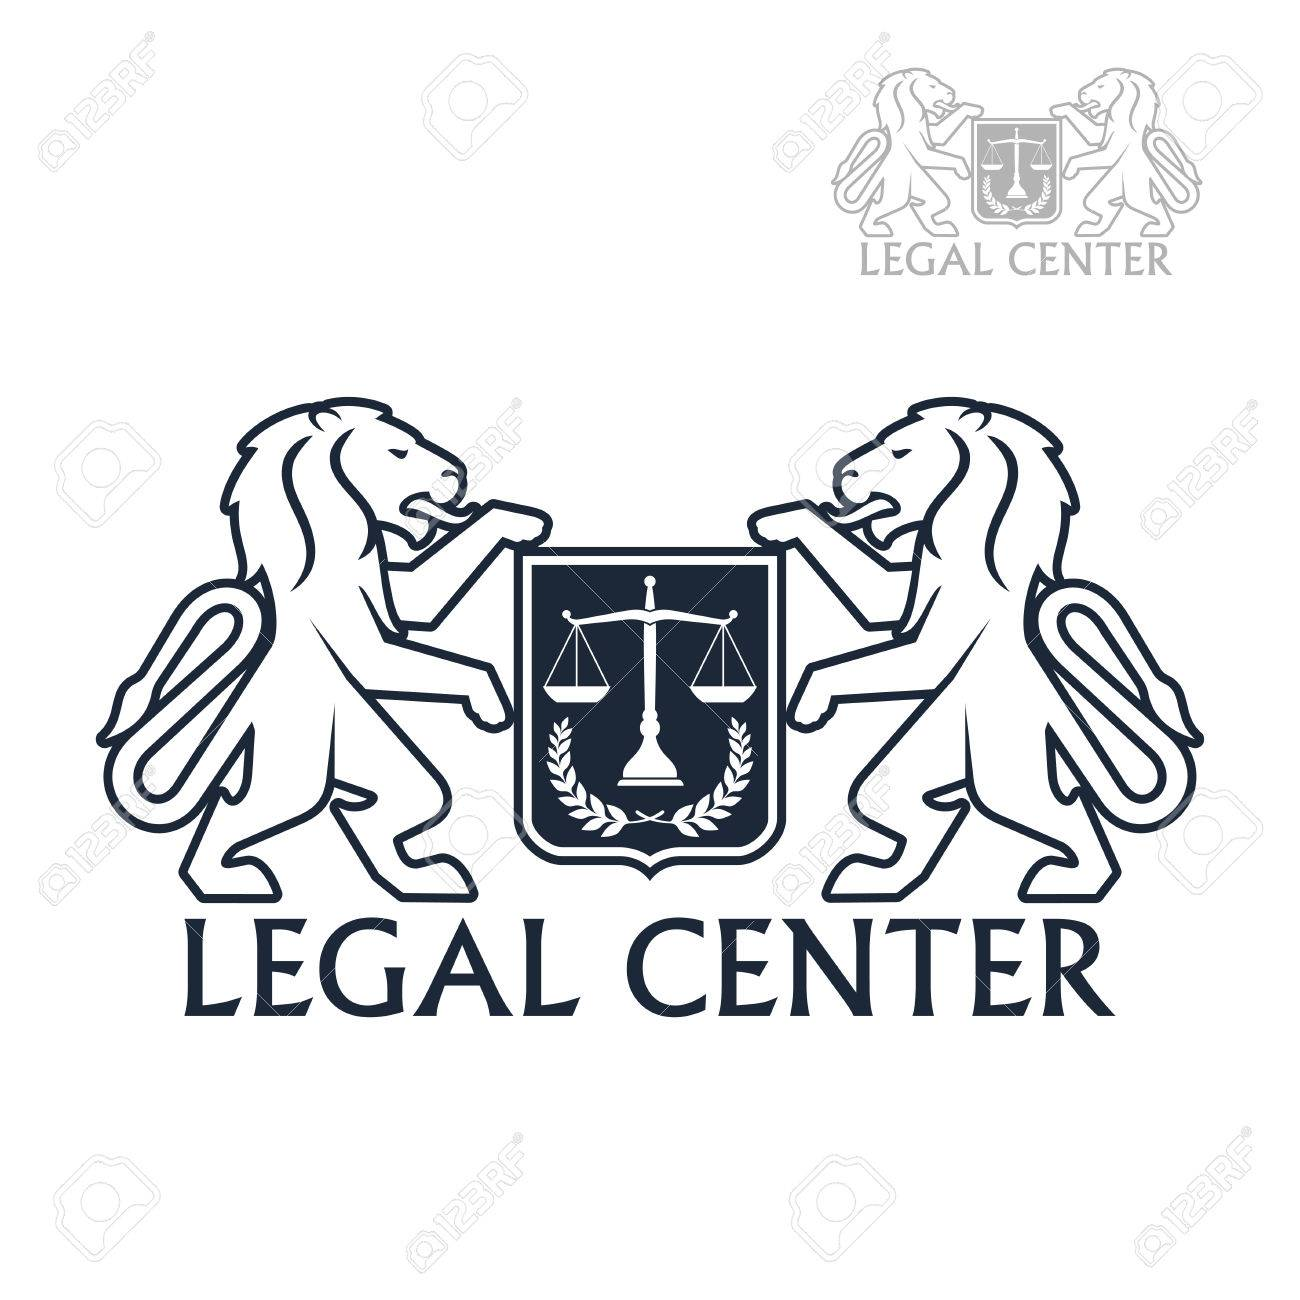 Advocacy And Law Legal Center Vector Icon With Symbols Of Heraldic